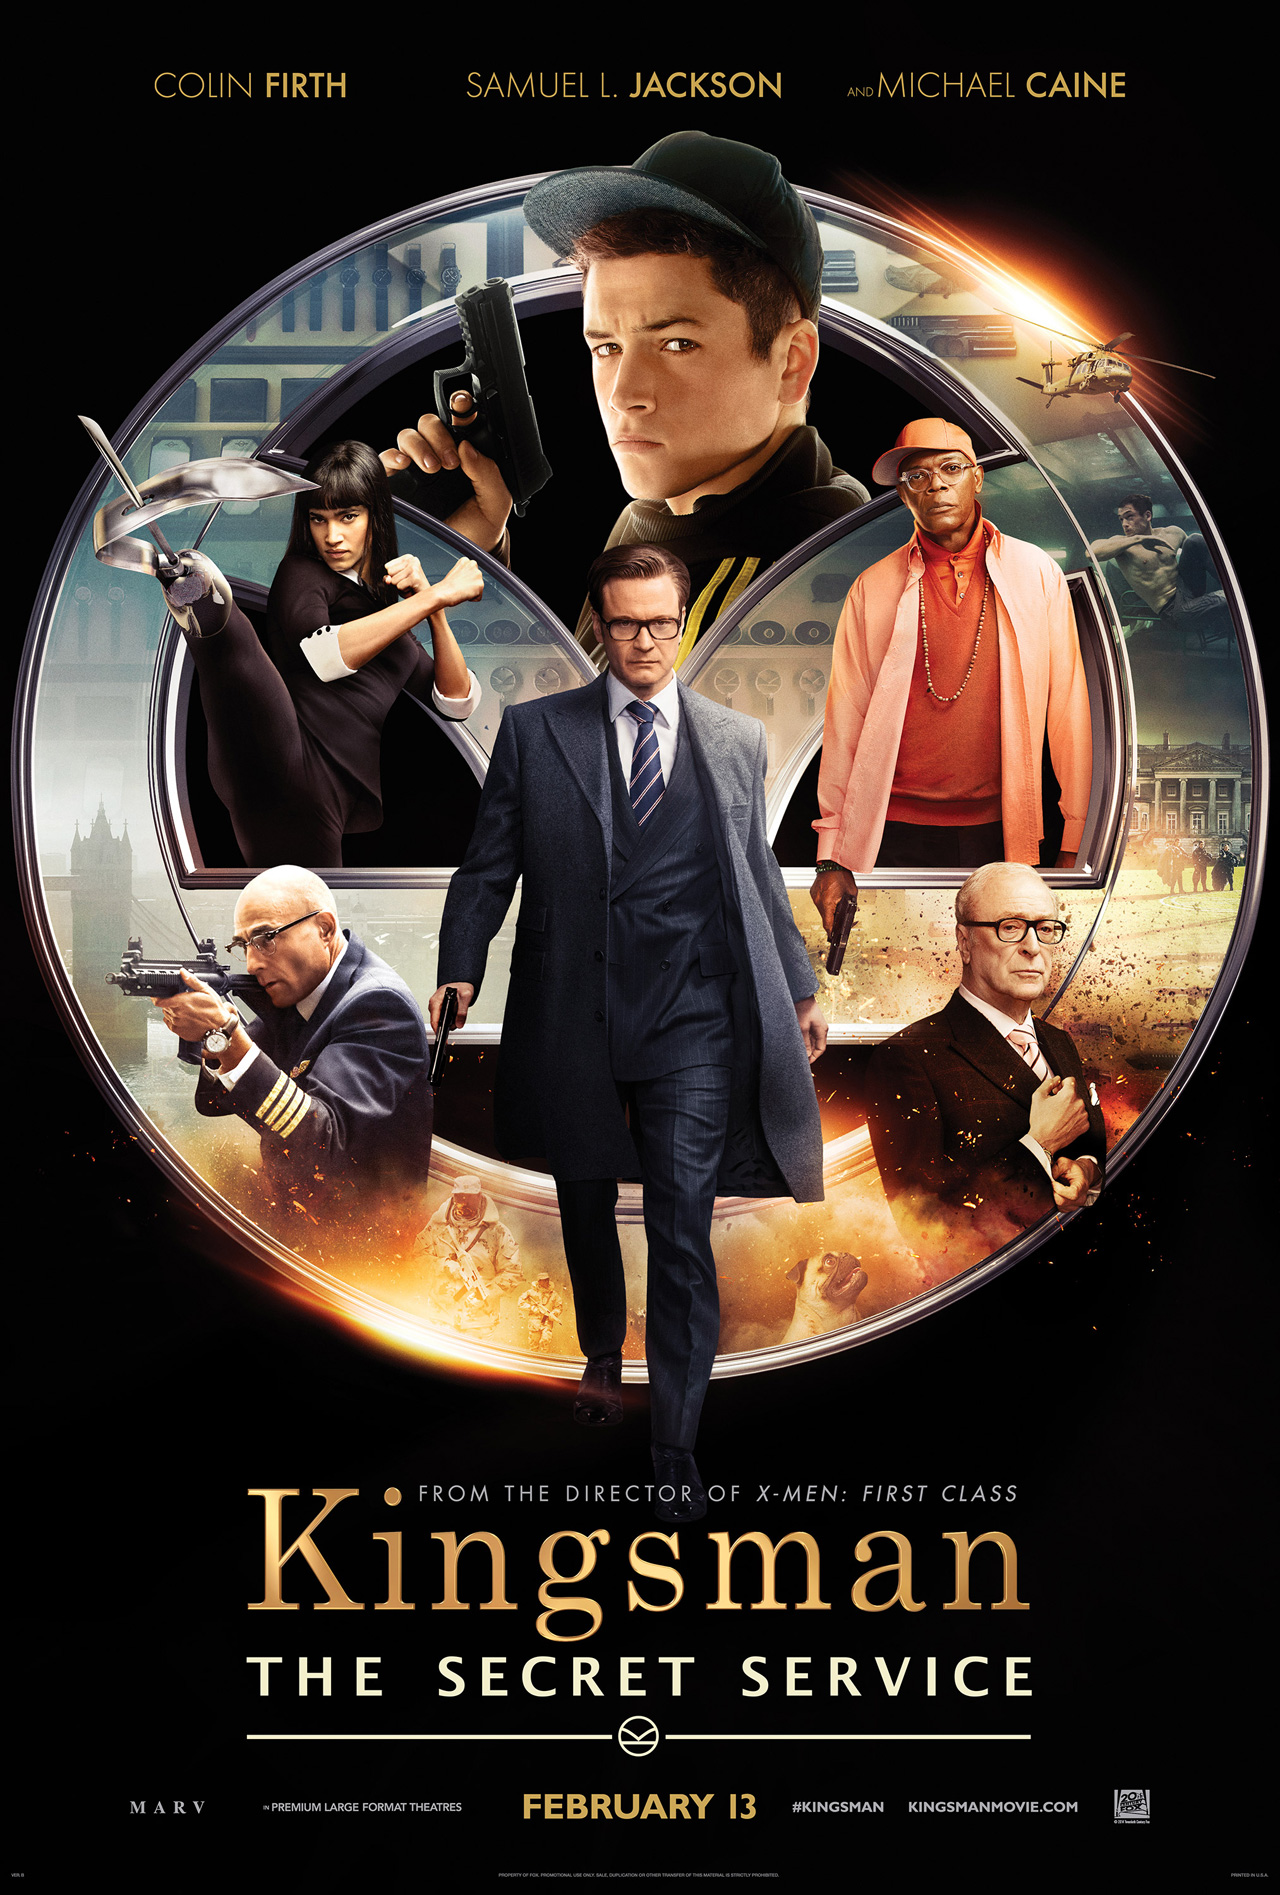 Kingsman-the-secret-service-2015-Film